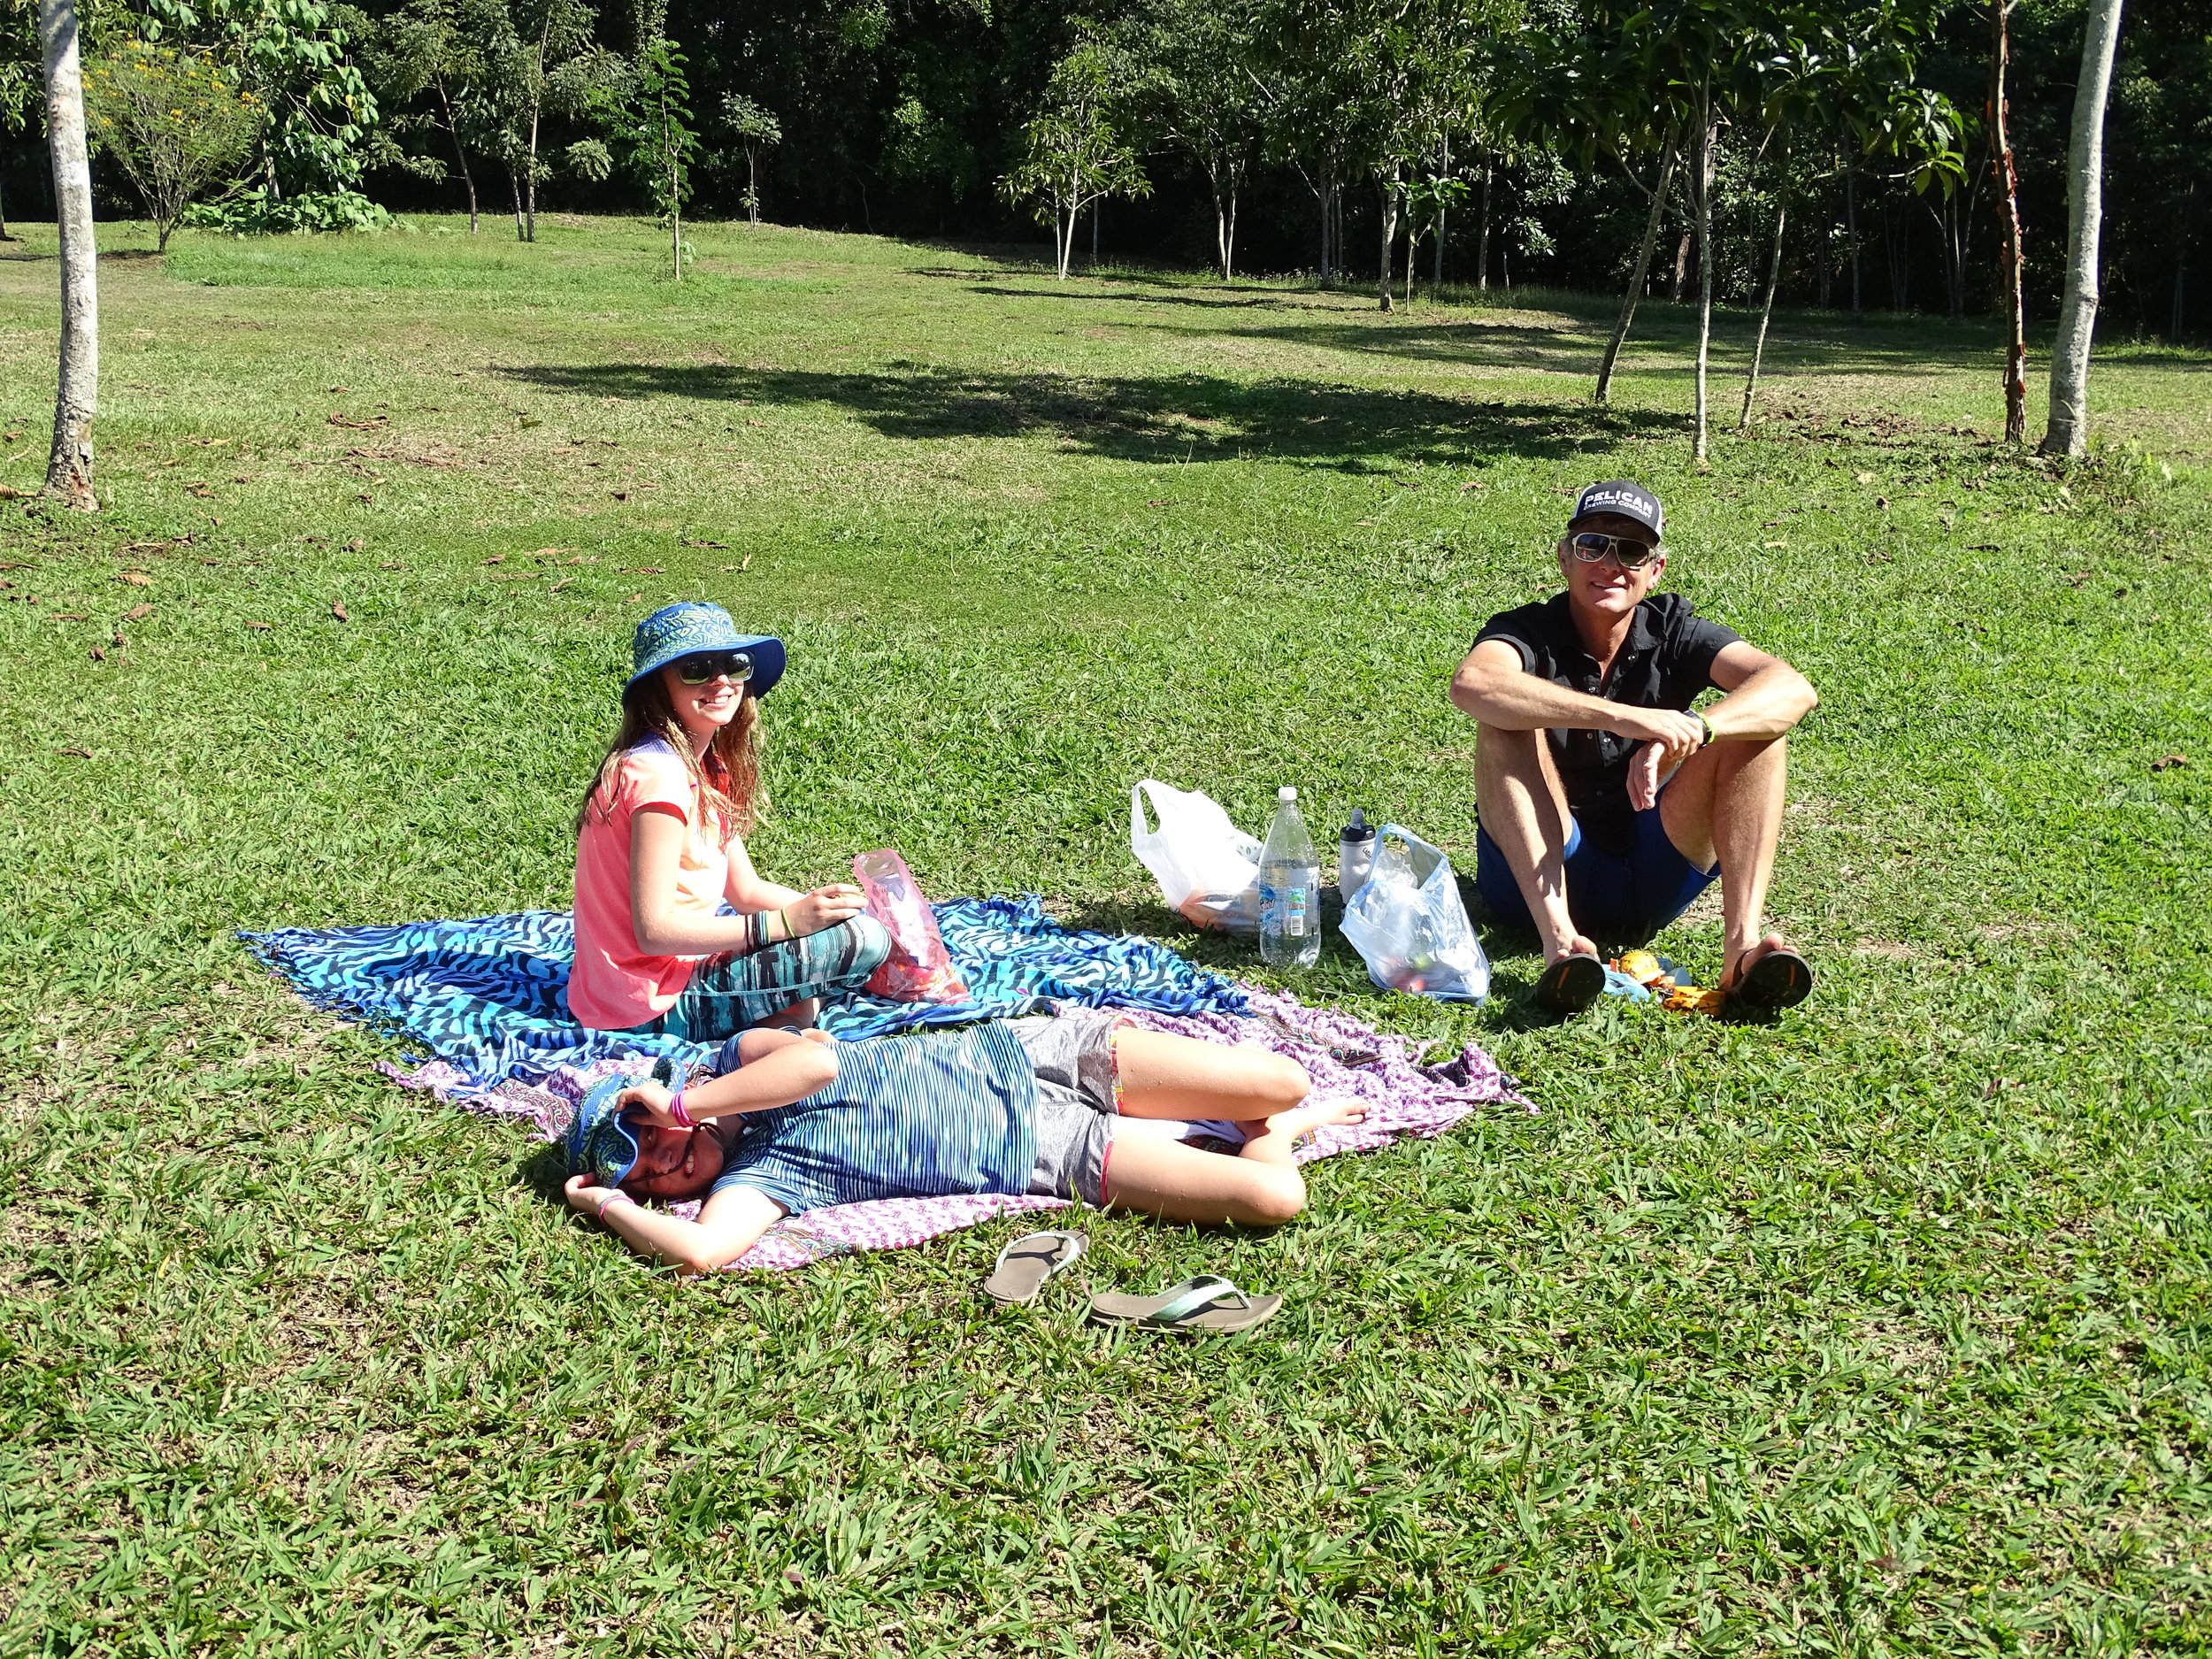 Having a picnic lunch before getting back in the car